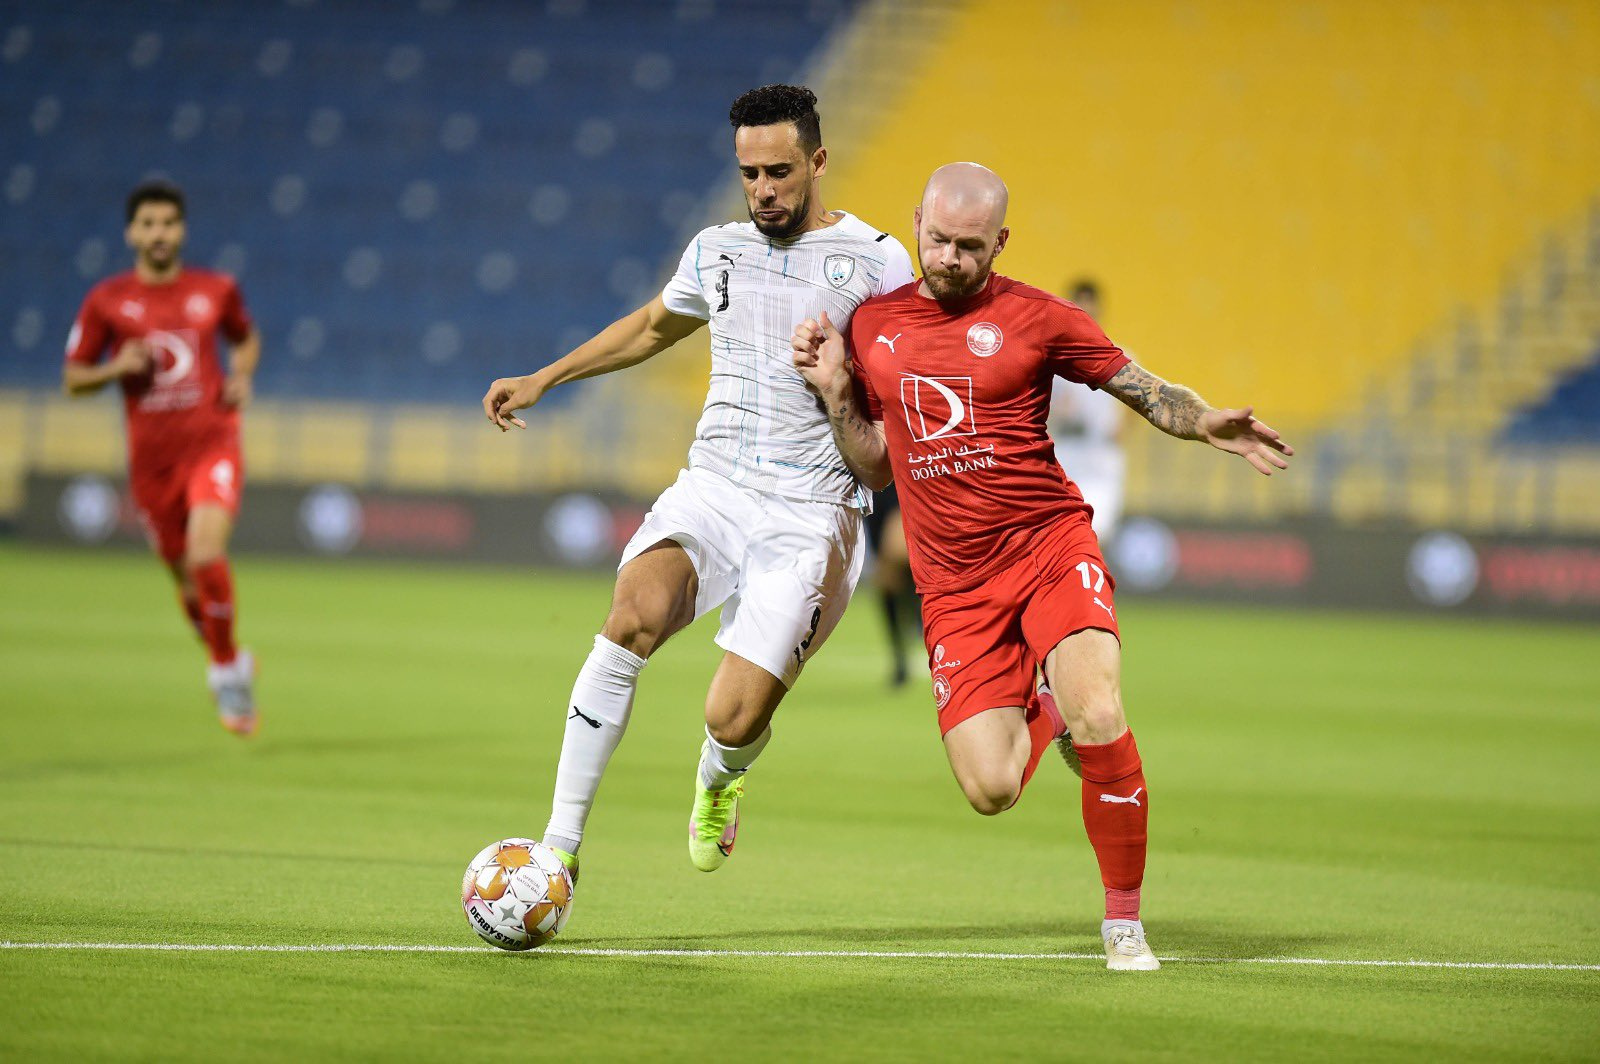 QNB Stars League: Exciting Results in the First Round